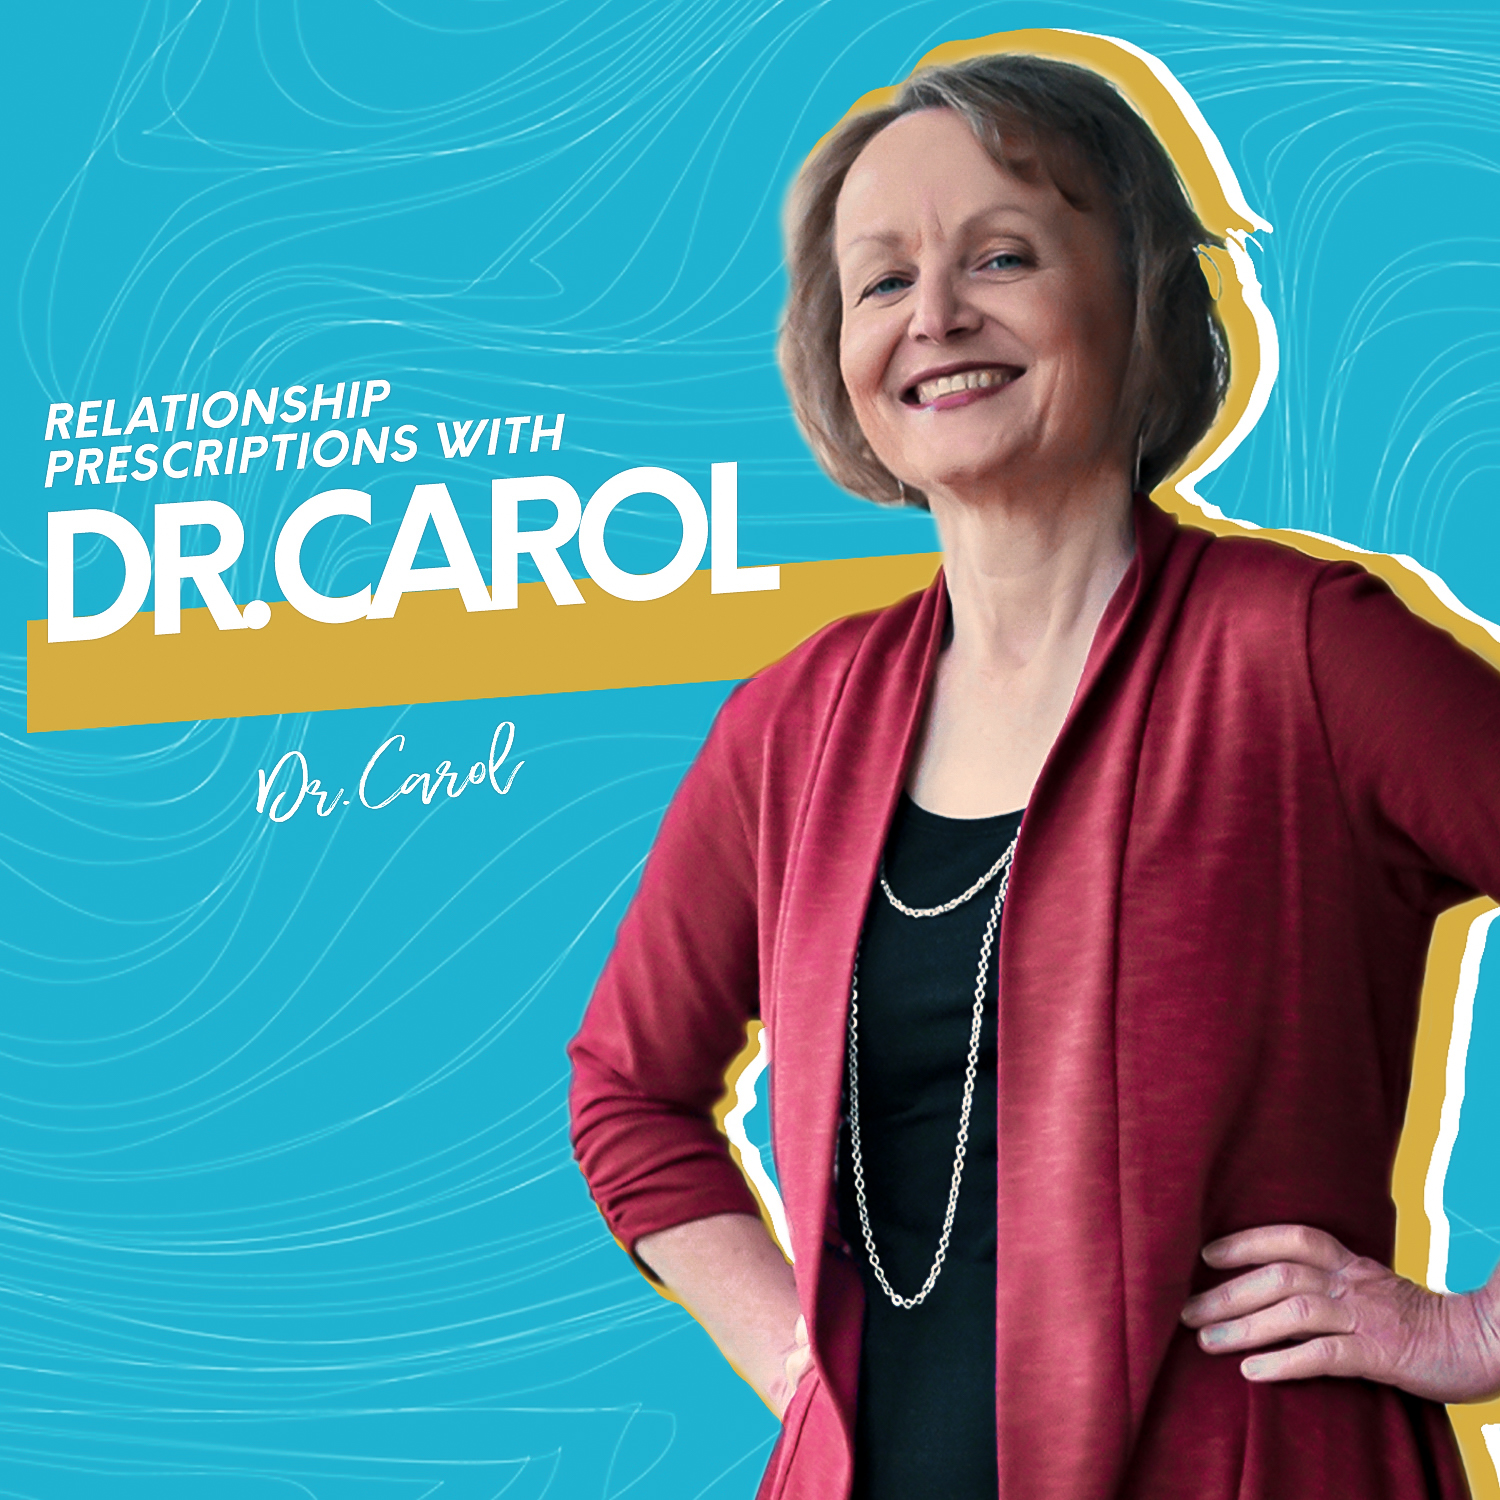 Relationship Prescriptions with Dr. Carol - Everything Christians Want to Know About Sex, But Are Afraid to Ask